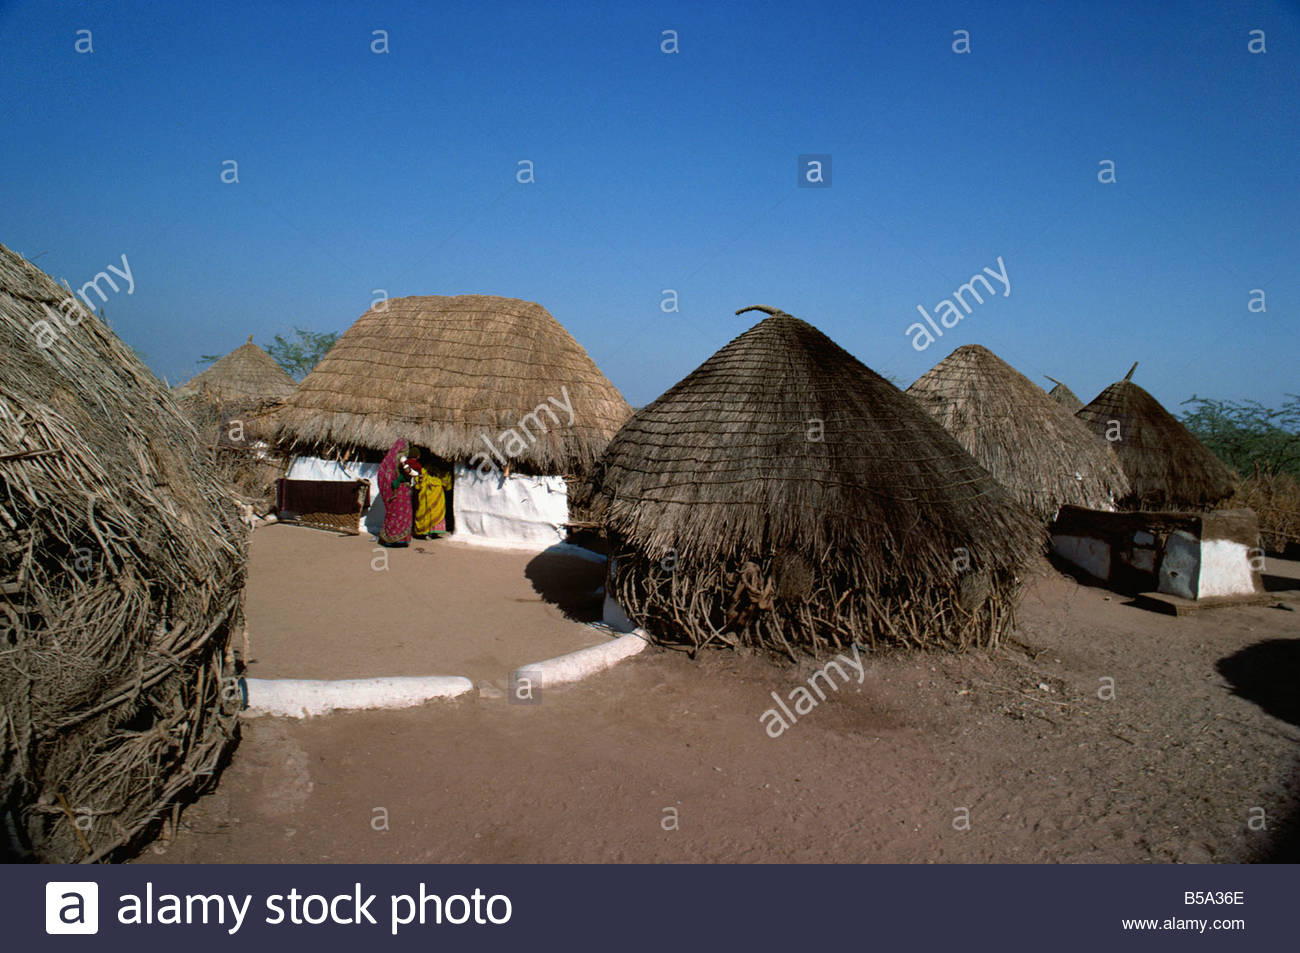 Sodha village, Jhura, Kutch district, Gujarat state, India - Stock Image